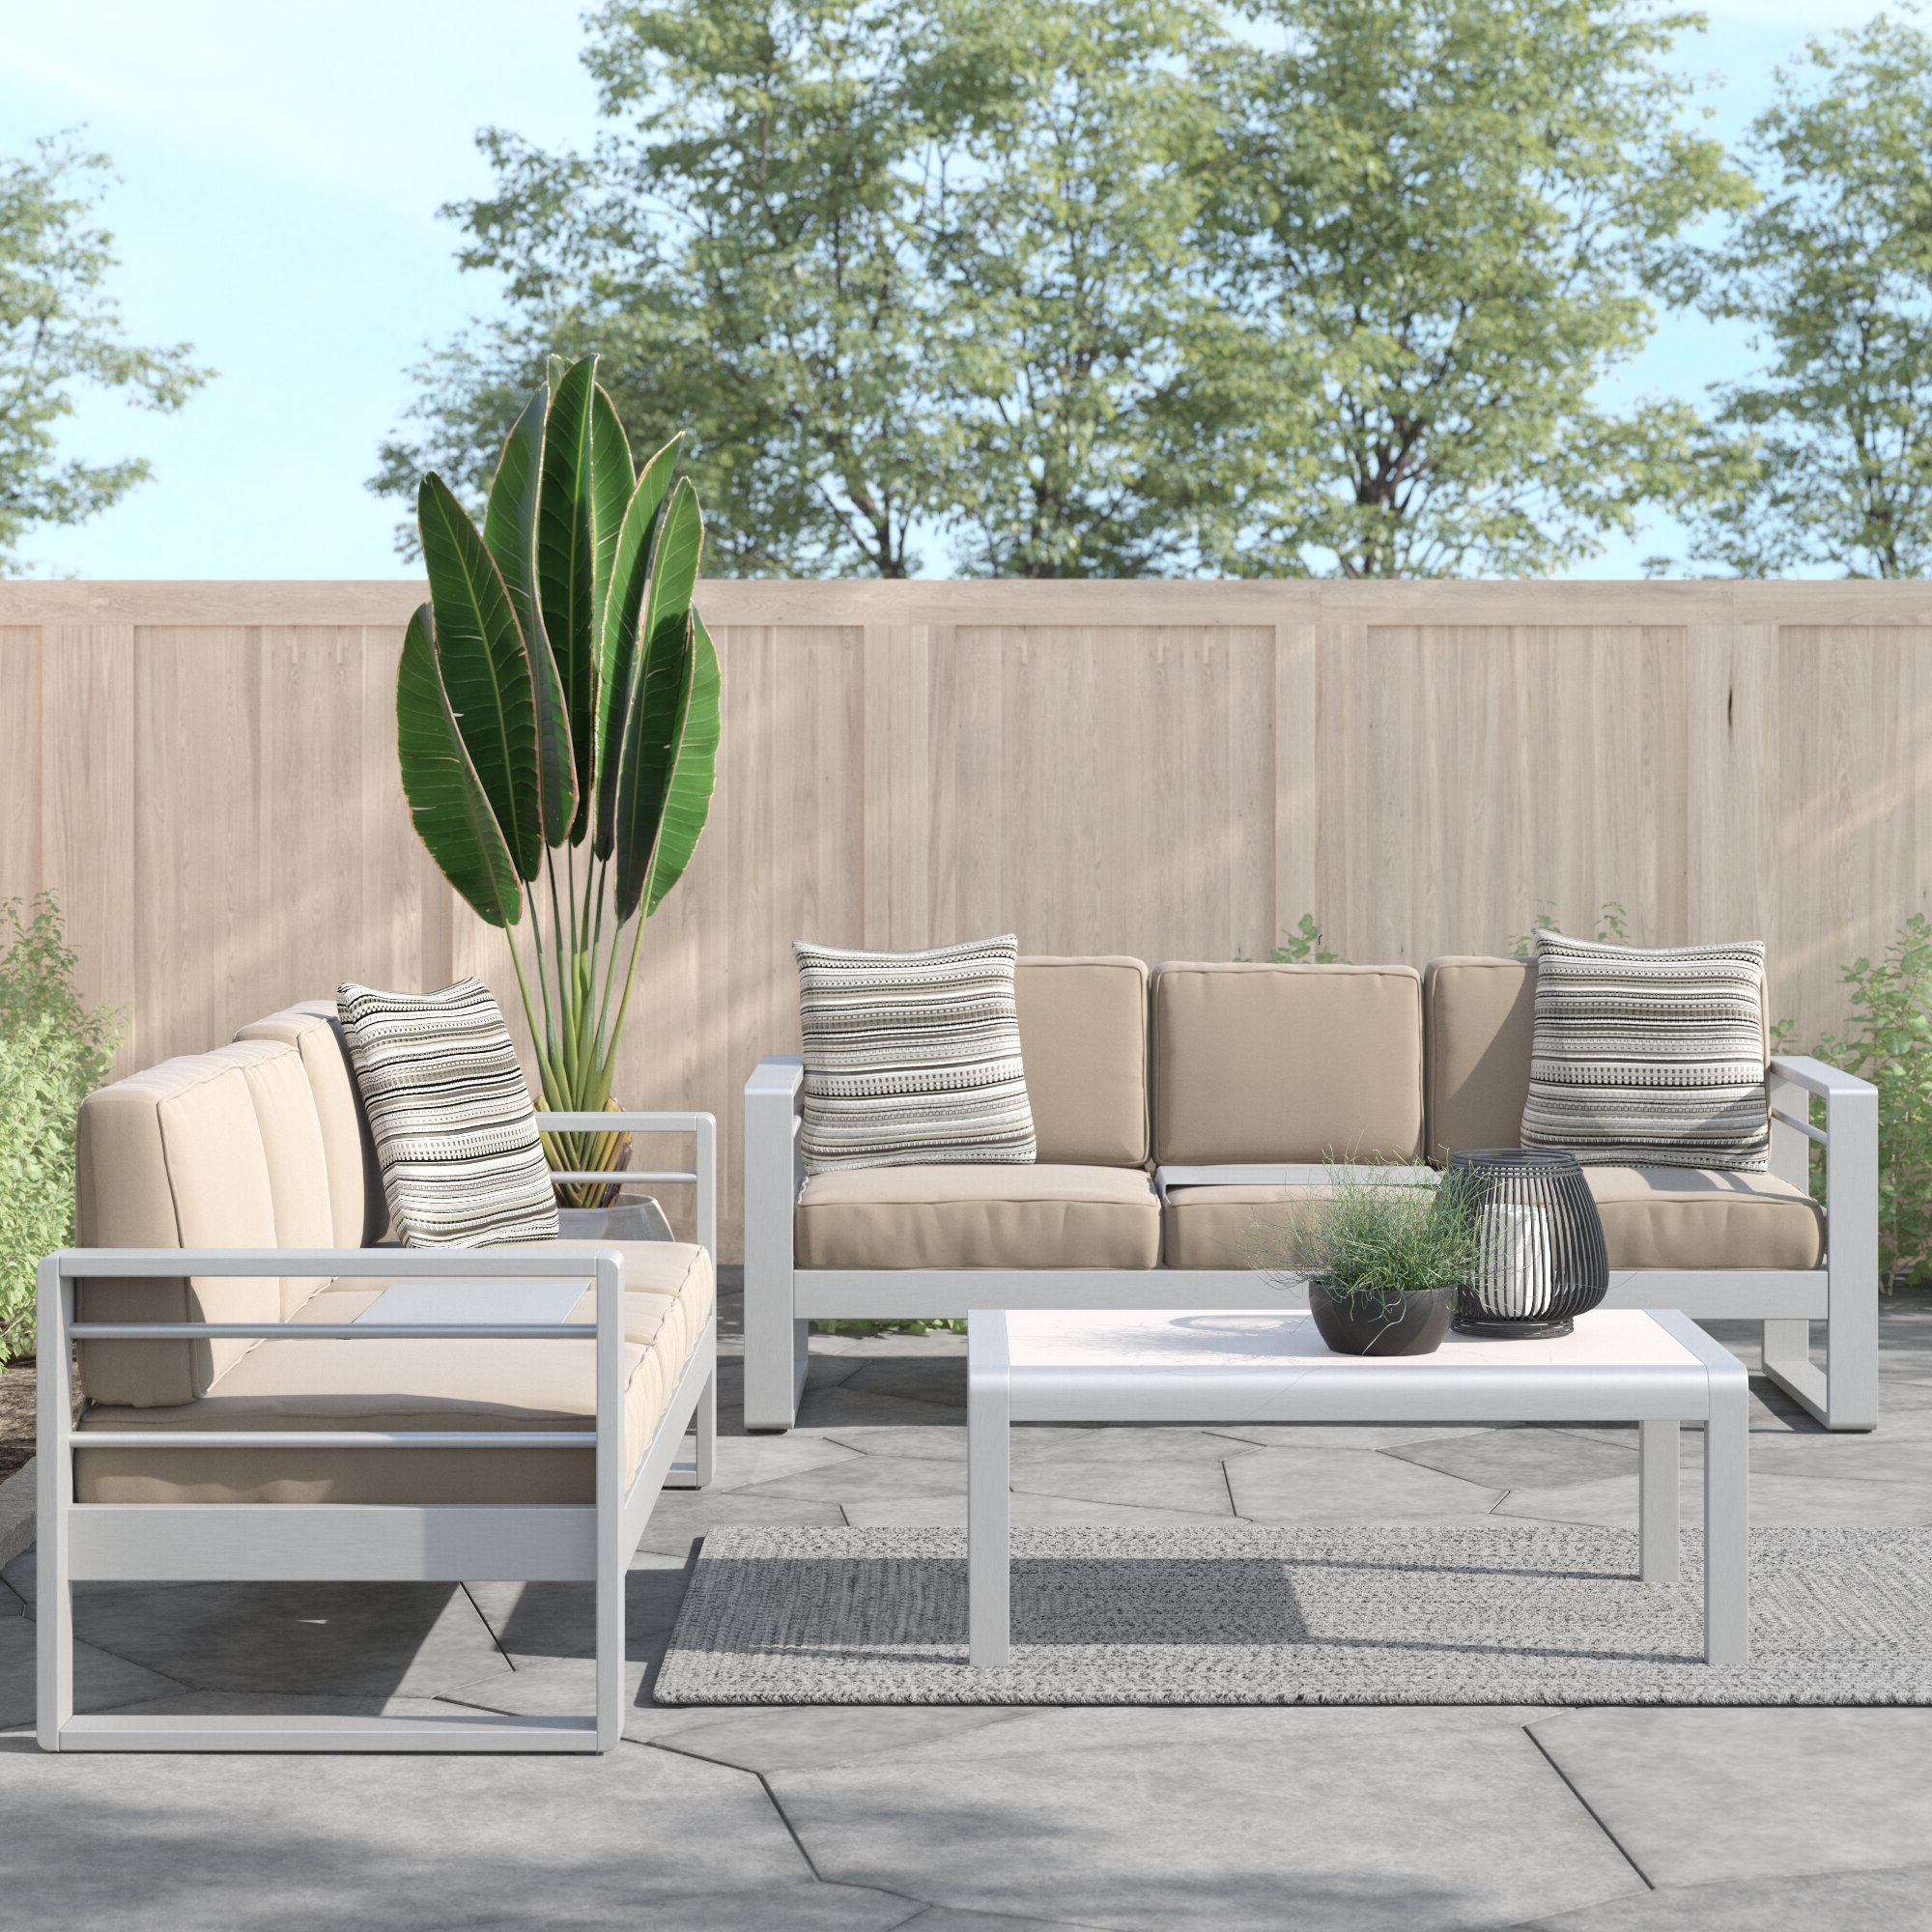 Most Recently Released Royalston 3 Piece Sofa Set Inside Royalston Patio Sofas With Cushions (View 9 of 20)